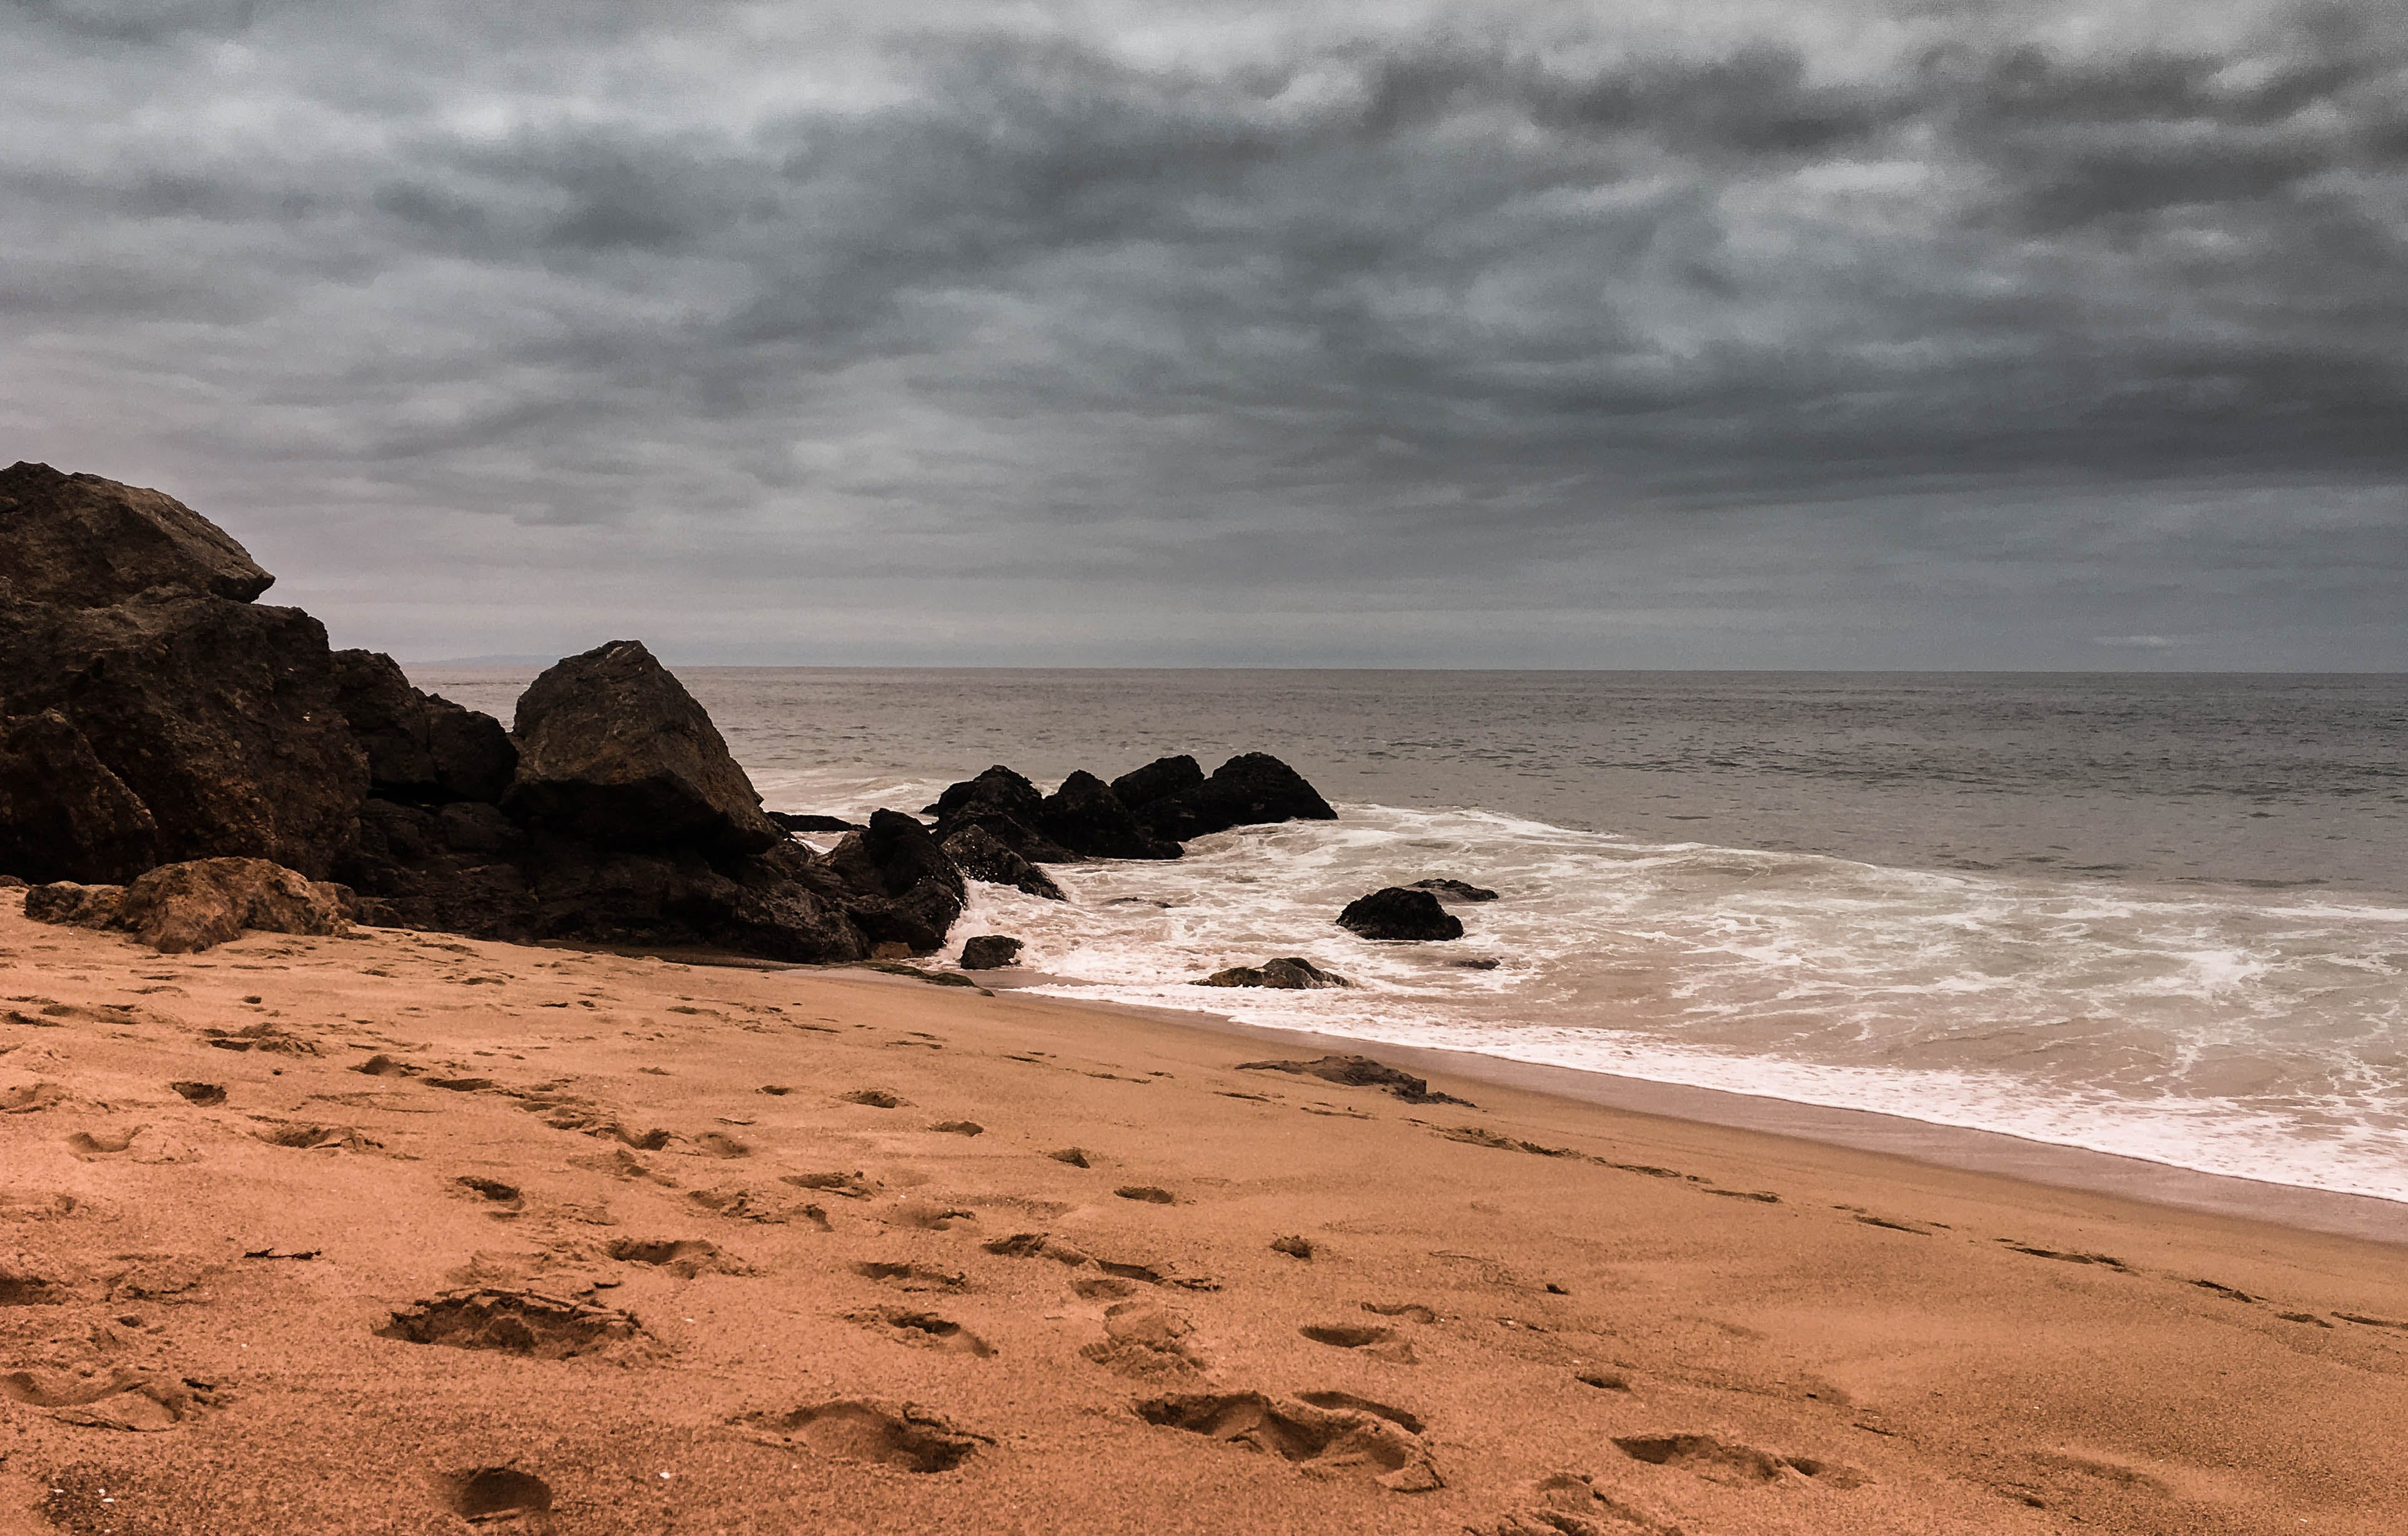 Free stock photo of beach, clouds, ocean, rocks